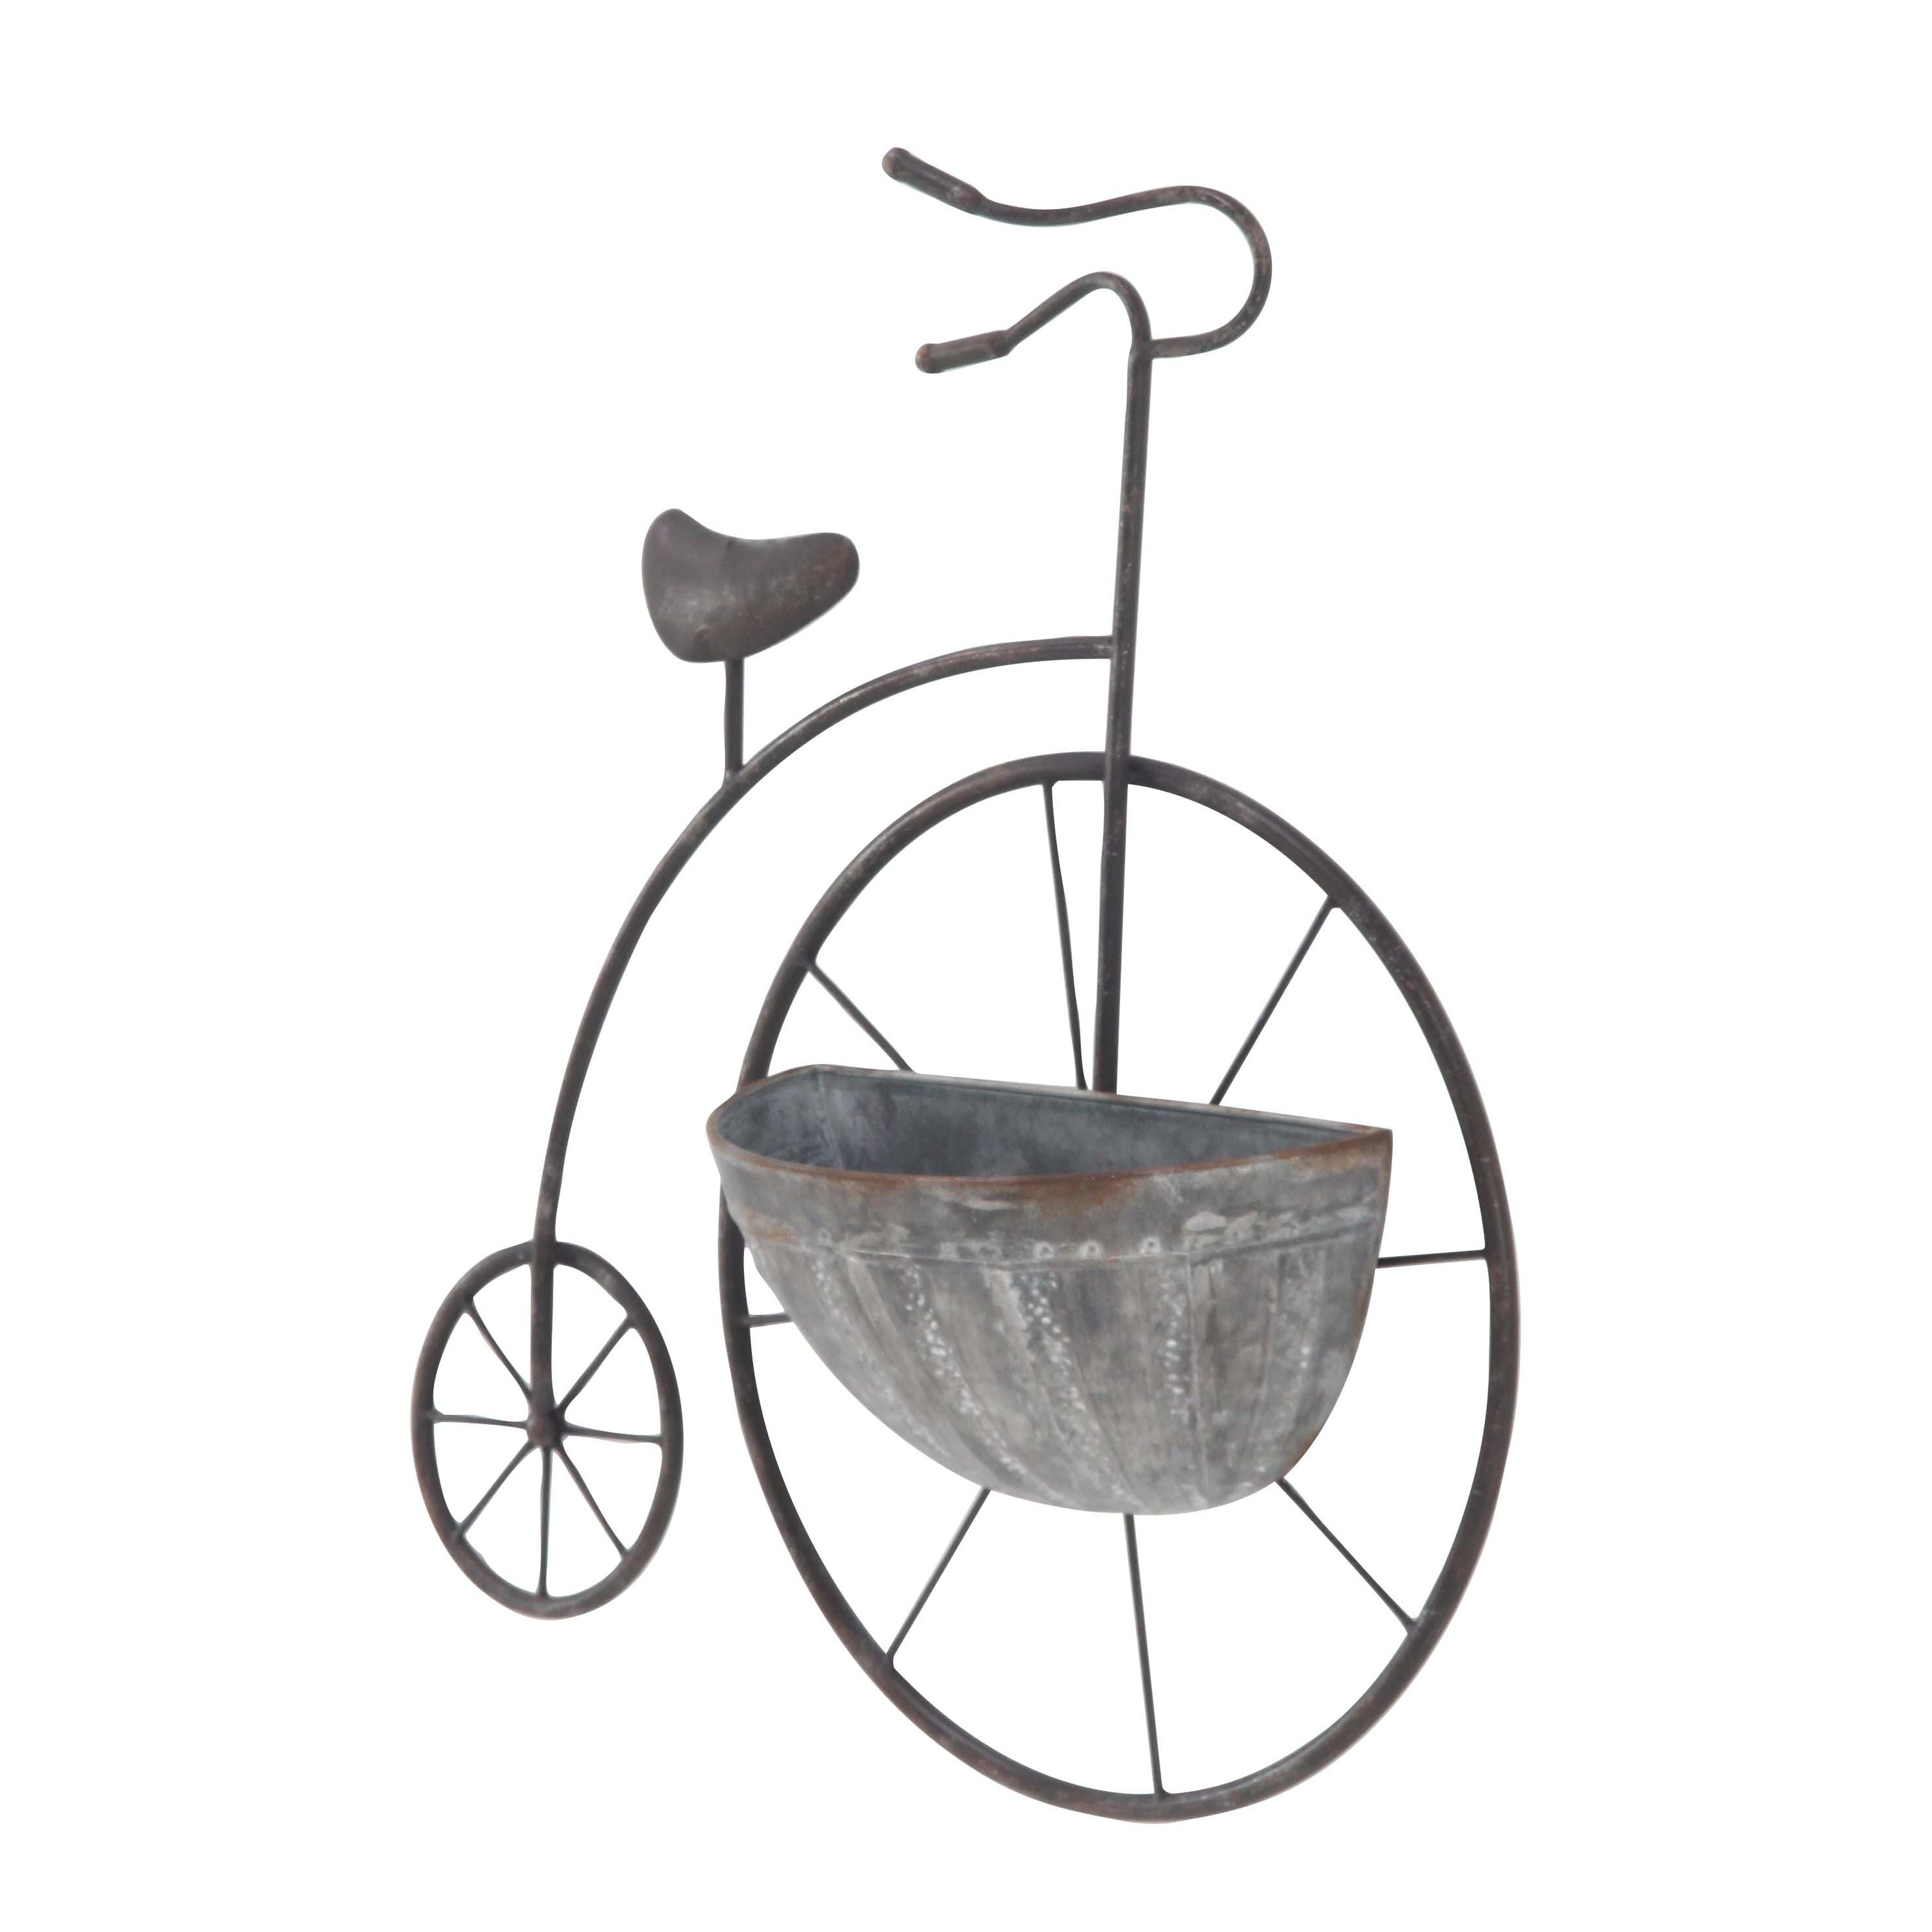 Shop Traditional Iron Penny Farthing Wall Planter As Is Item